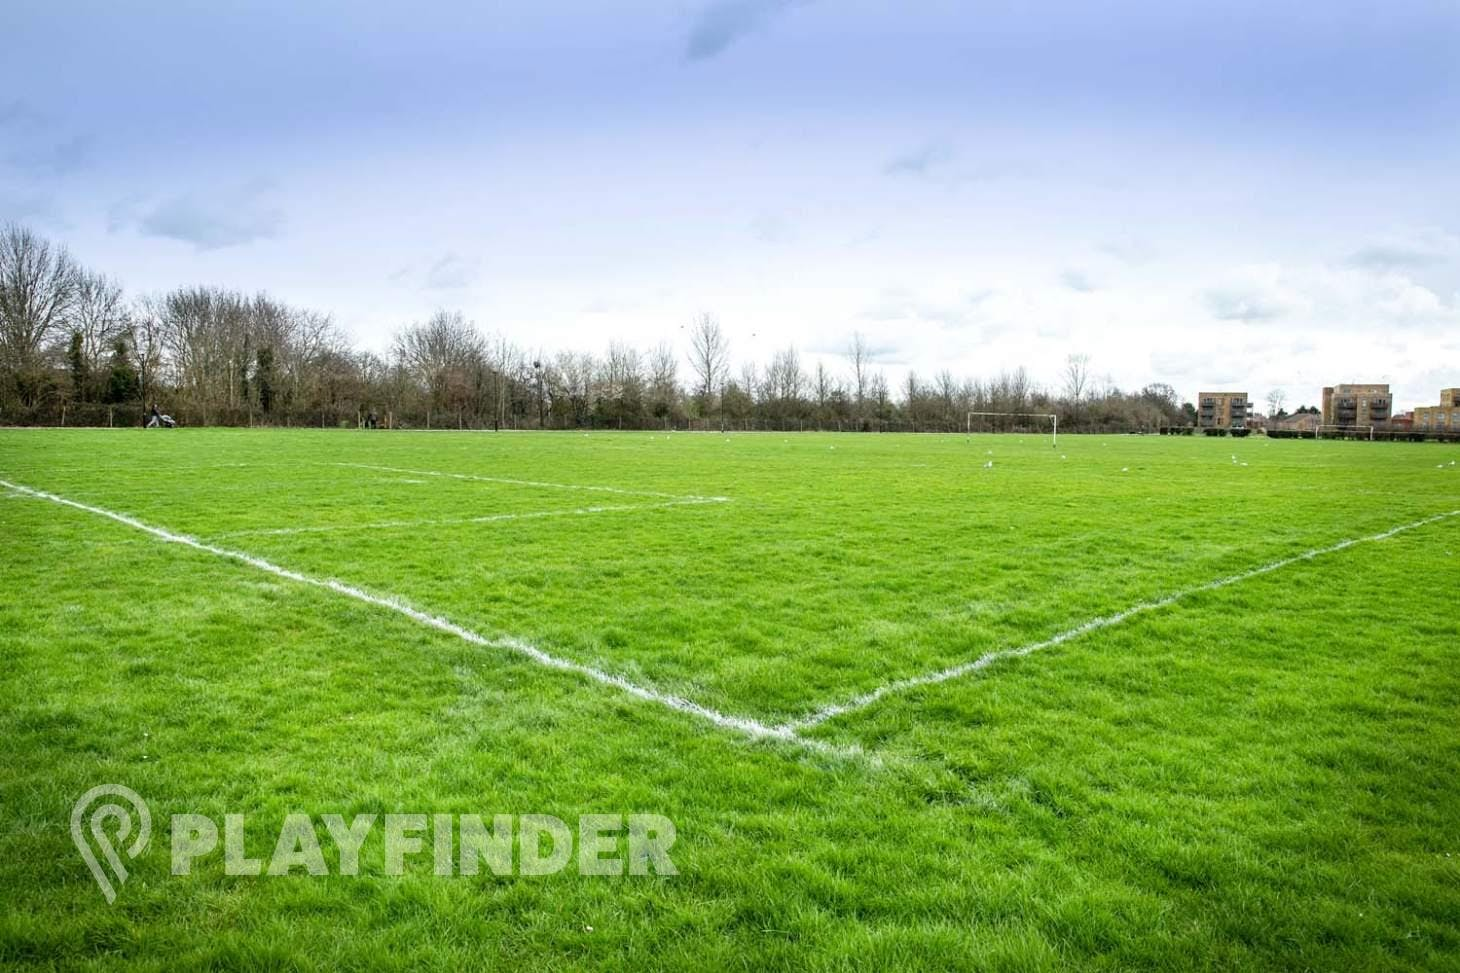 Rectory Park 9 a side | Grass football pitch